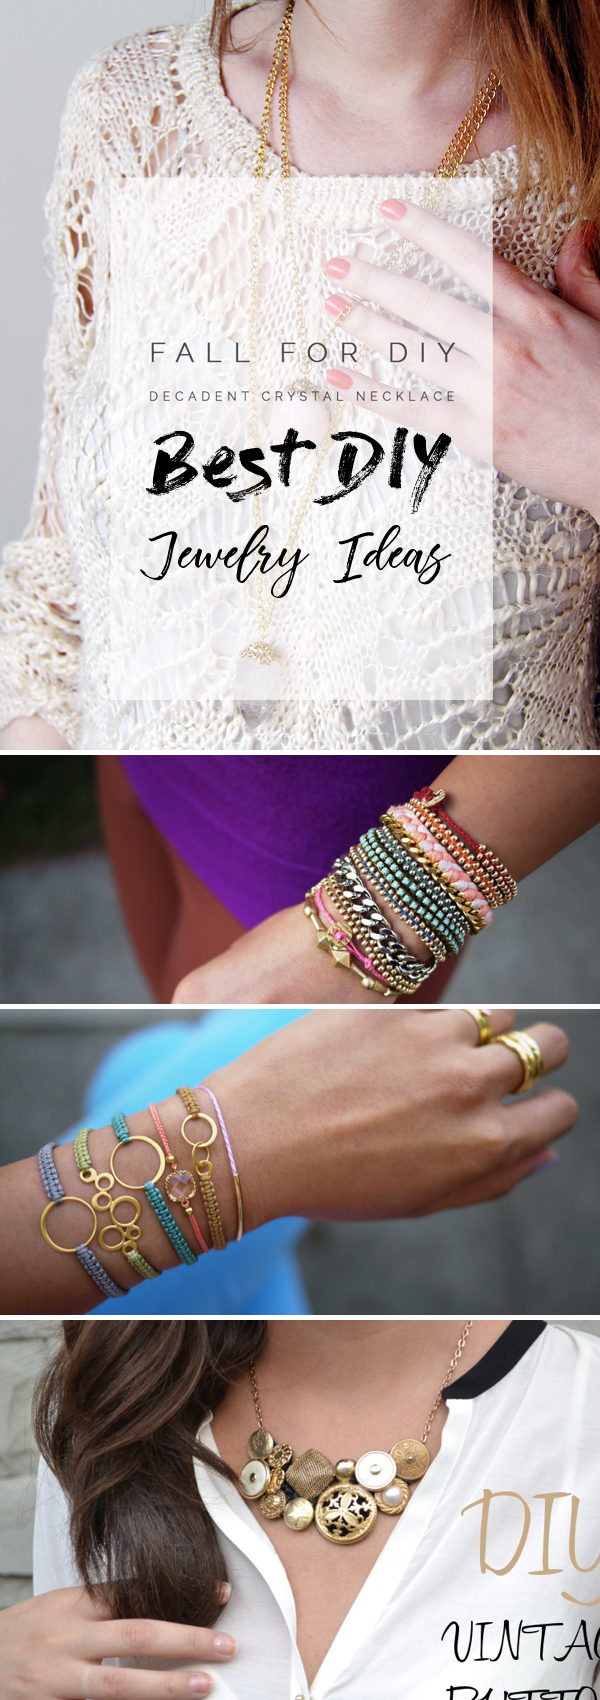 23 DIY Jewelry Ideas Putting Together Splendorous Pieces of Wearable Beauty!